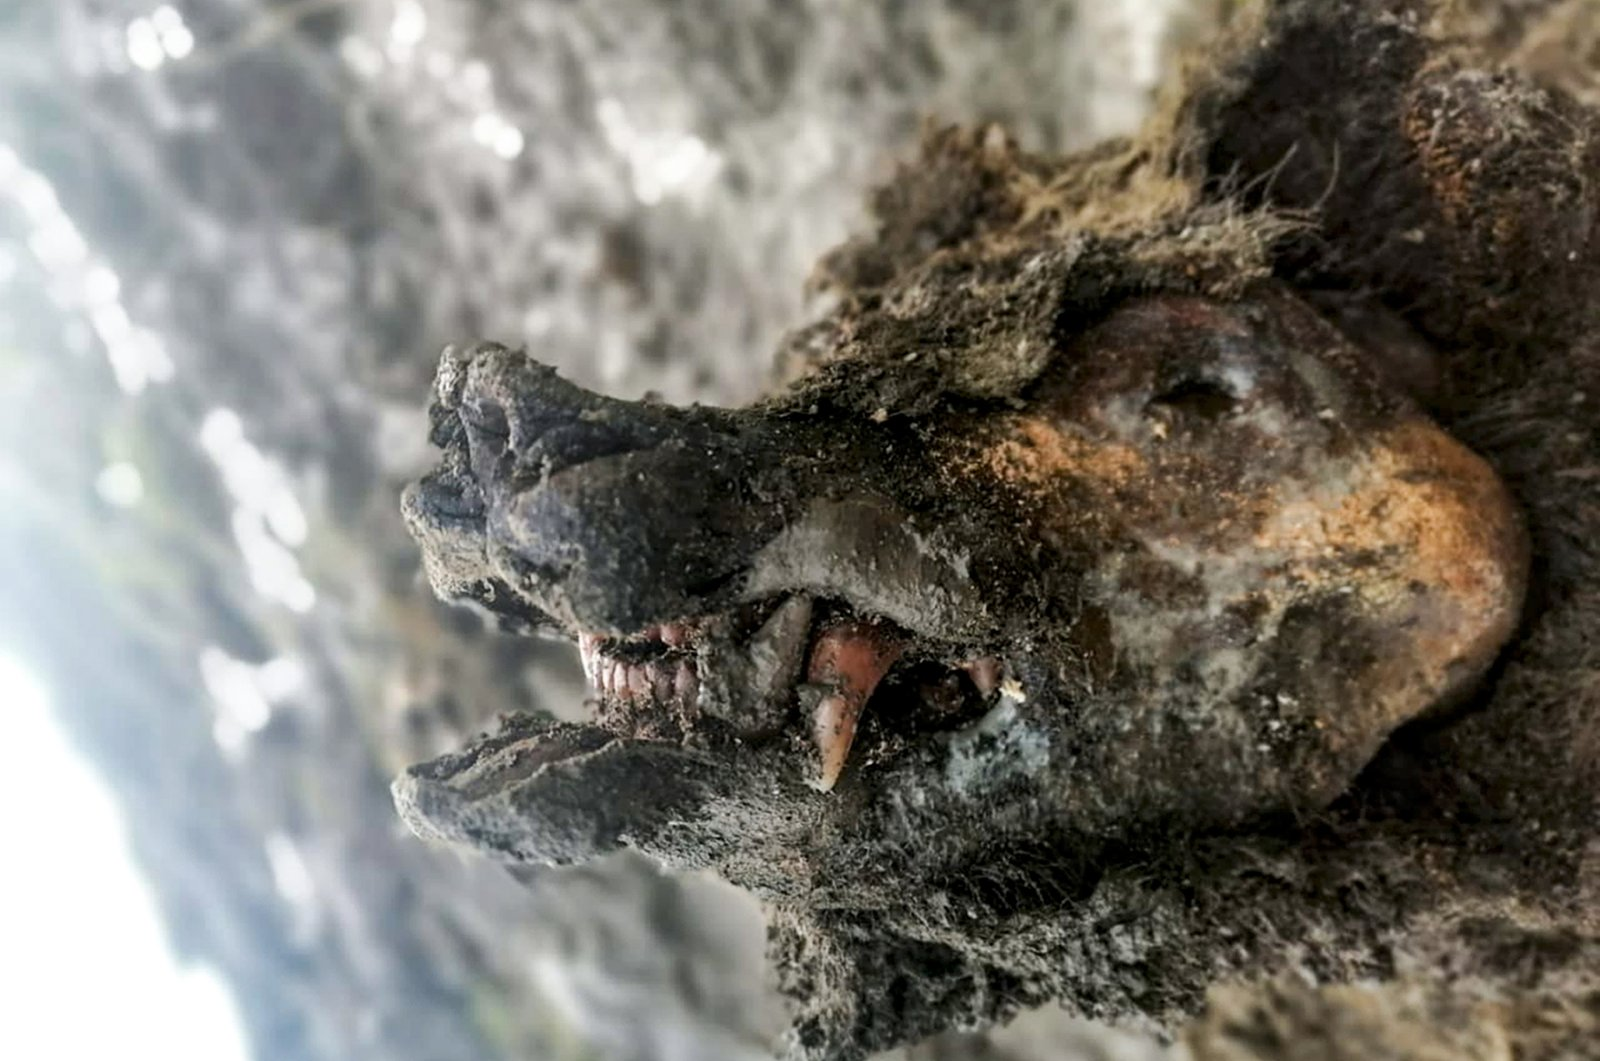 The head of an Ice Age cave bear found on Bolshoy Lyakhovsky Island, or Great Lyakhovsky, the largest of the Lyakhovsky Islands belonging to the New Siberian Islands archipelago between the Laptev Sea and the East Siberian Sea in northern Russia. (North-Eastern Federal University via AP)